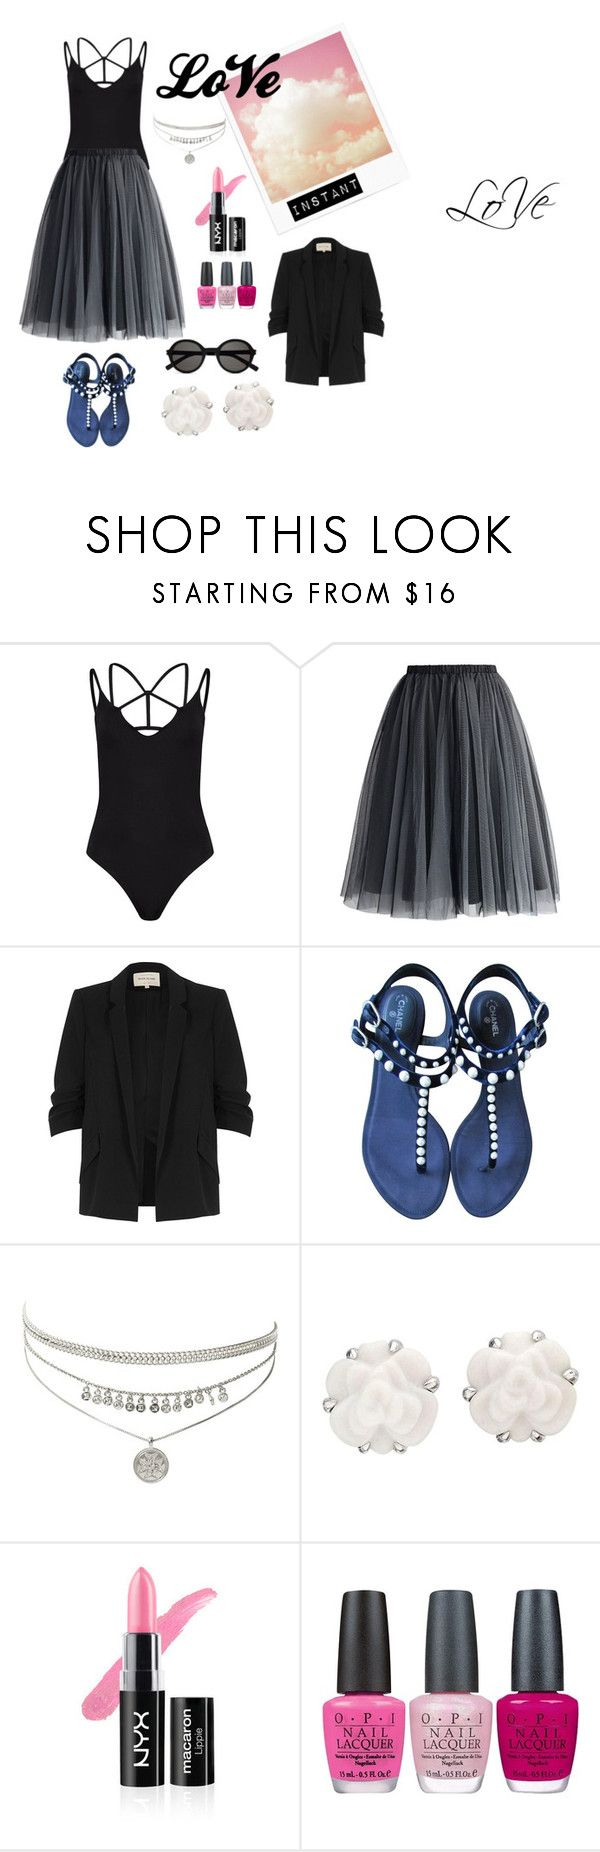 """Can't live without: Tulle Skirt Black body suit"" by neerose ❤ liked on Polyvore featuring Boohoo, Chicwish, River Island, Chanel, OPI and Yves Saint Laurent"